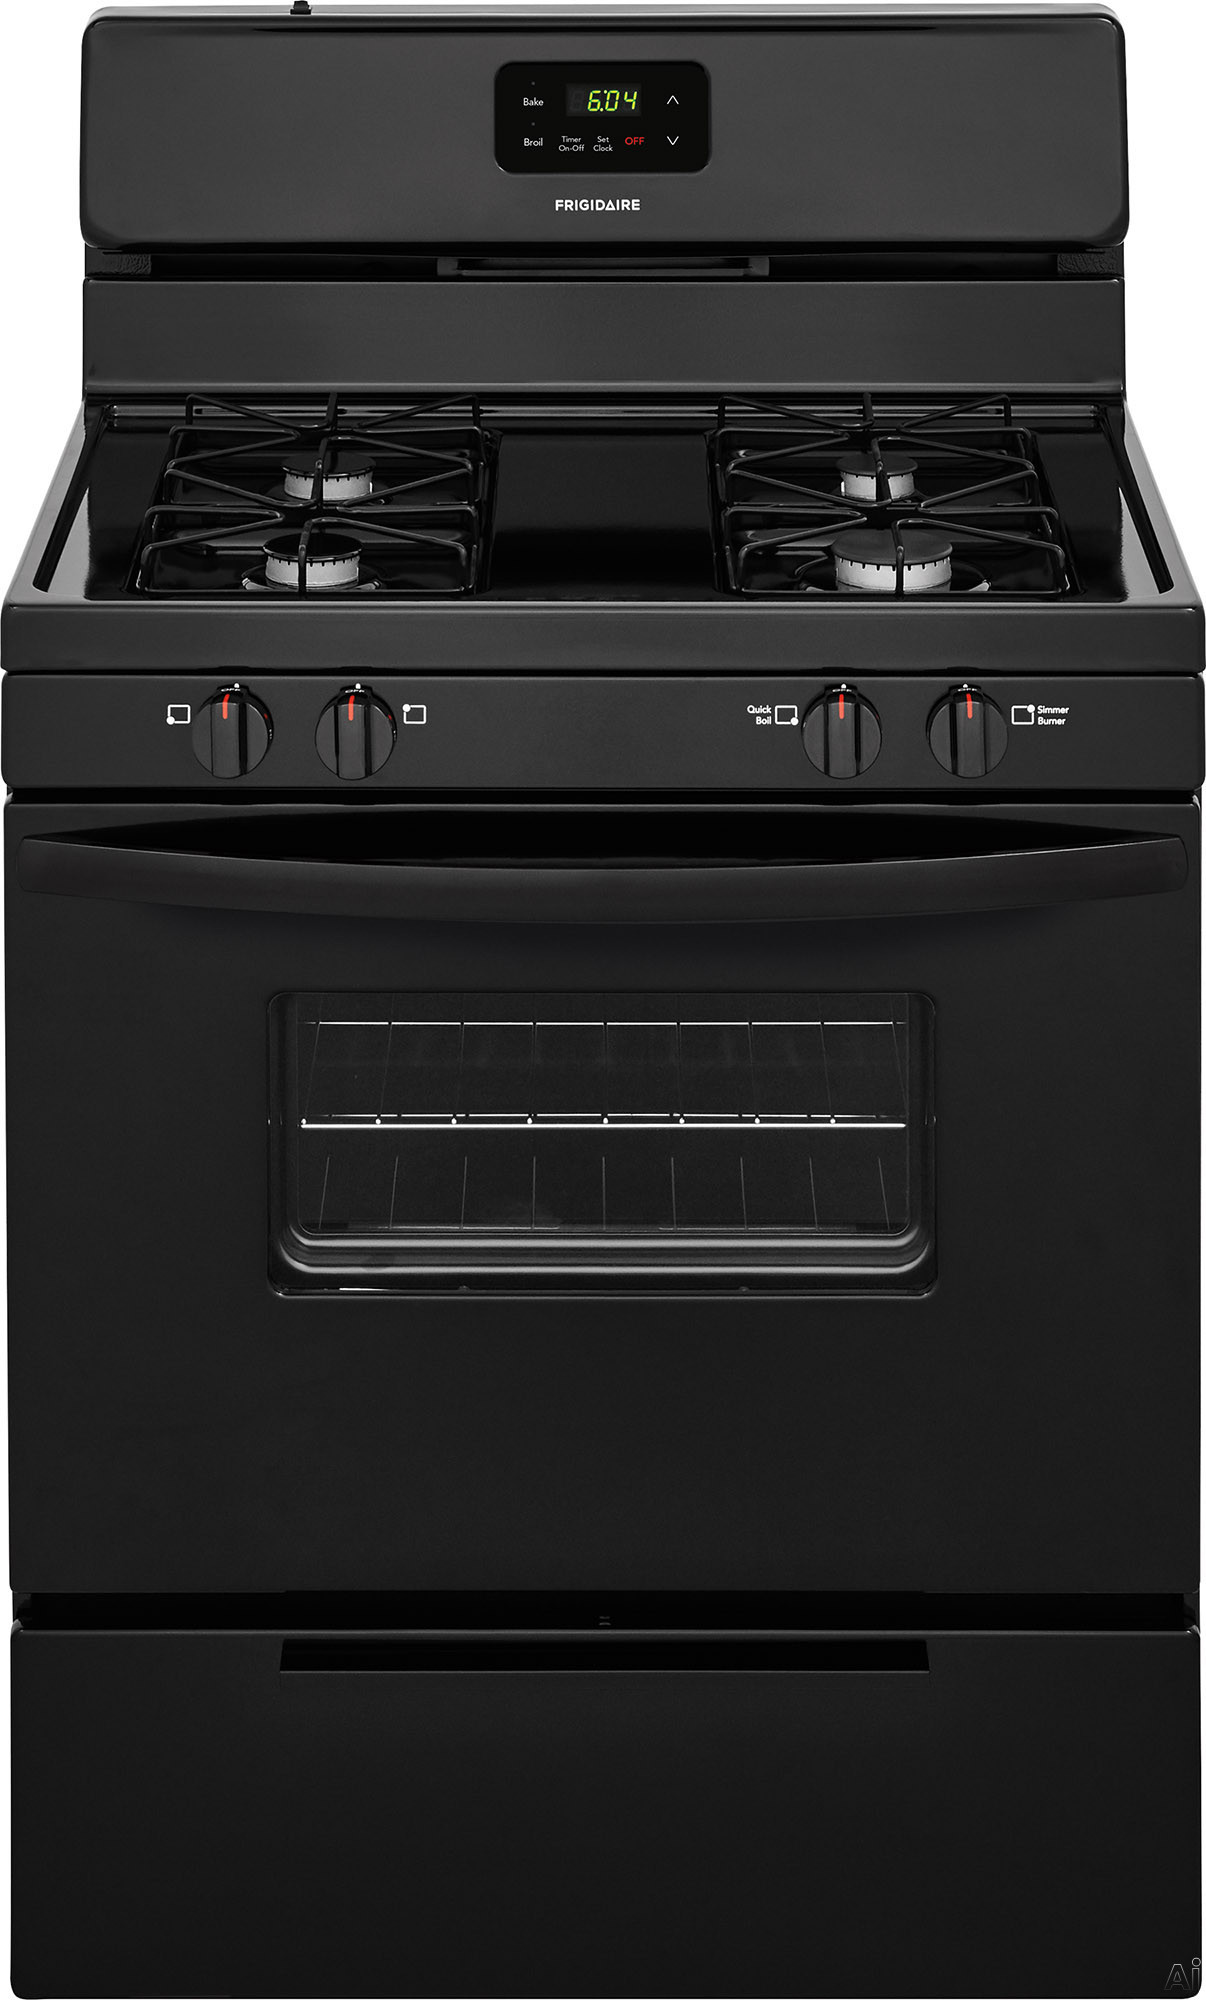 Frigidaire FFGF3016TB 30 Inch Freestanding Gas Range with Simmer Burner, Broiler Drawer, 4 Sealed Burners and 4.2 cu. ft. Capacity: Black